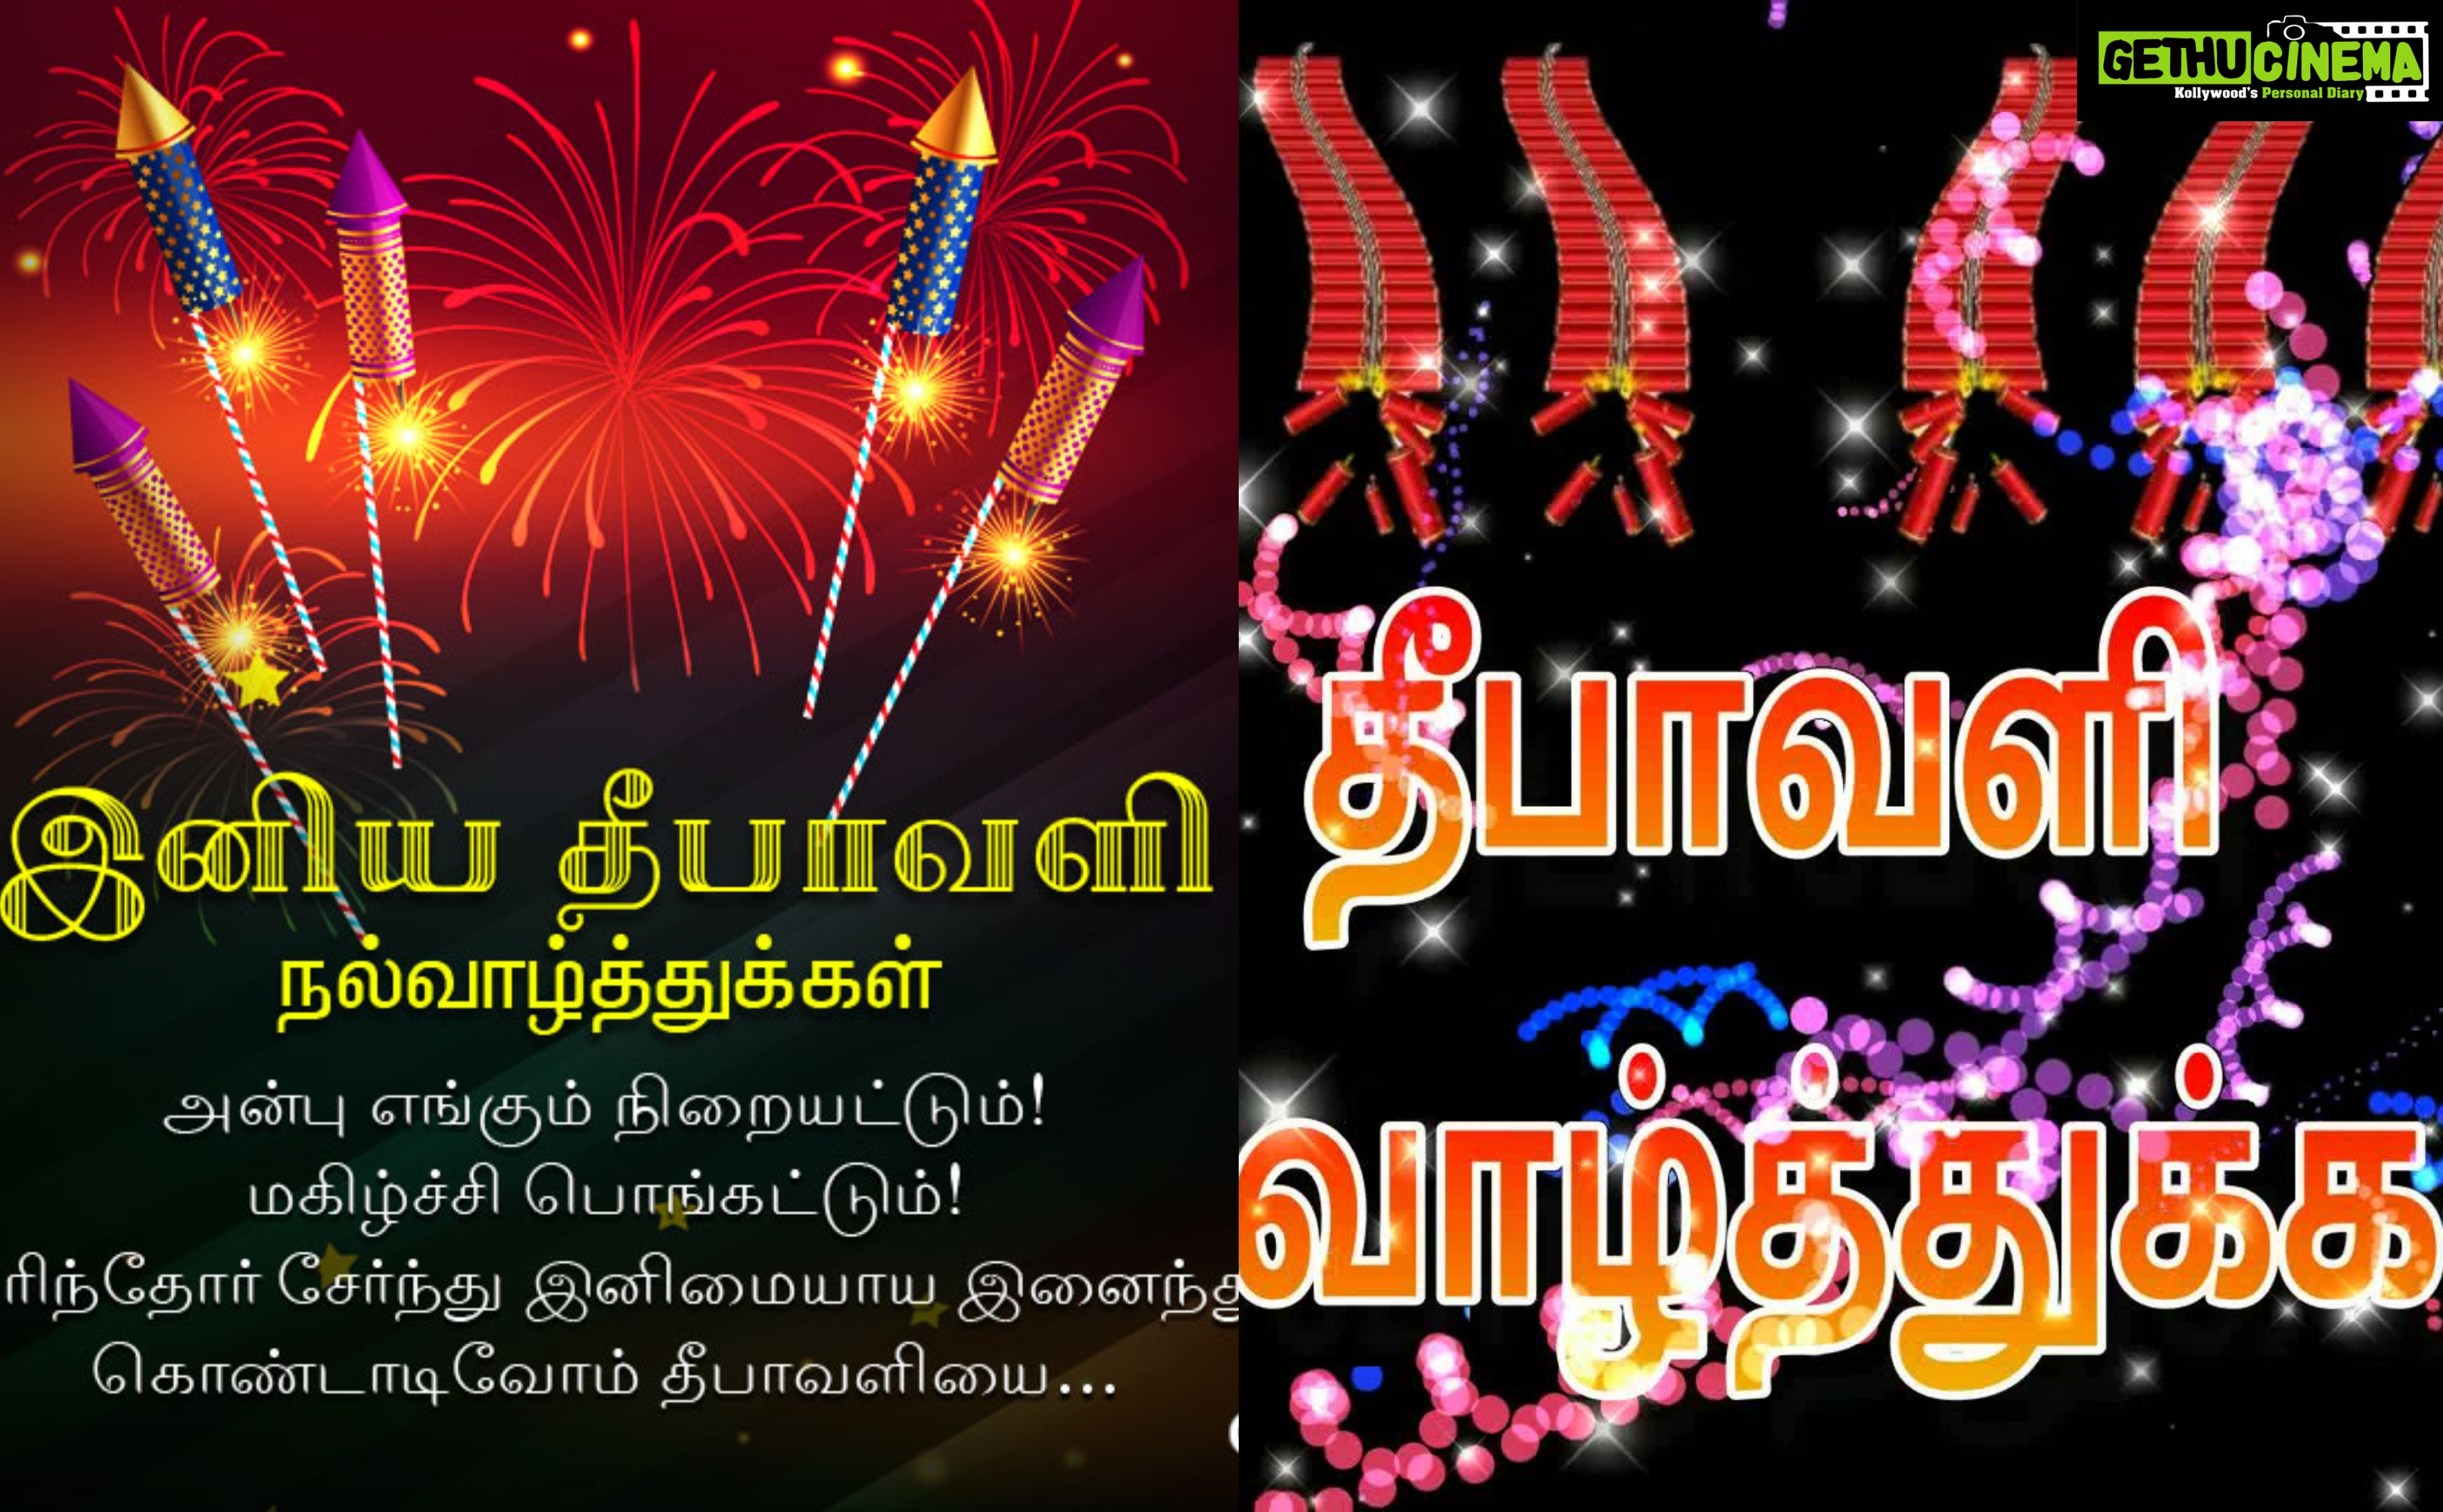 50 Happy Diwali 2018 Images Wishes Greetings And Quotes In Tamil